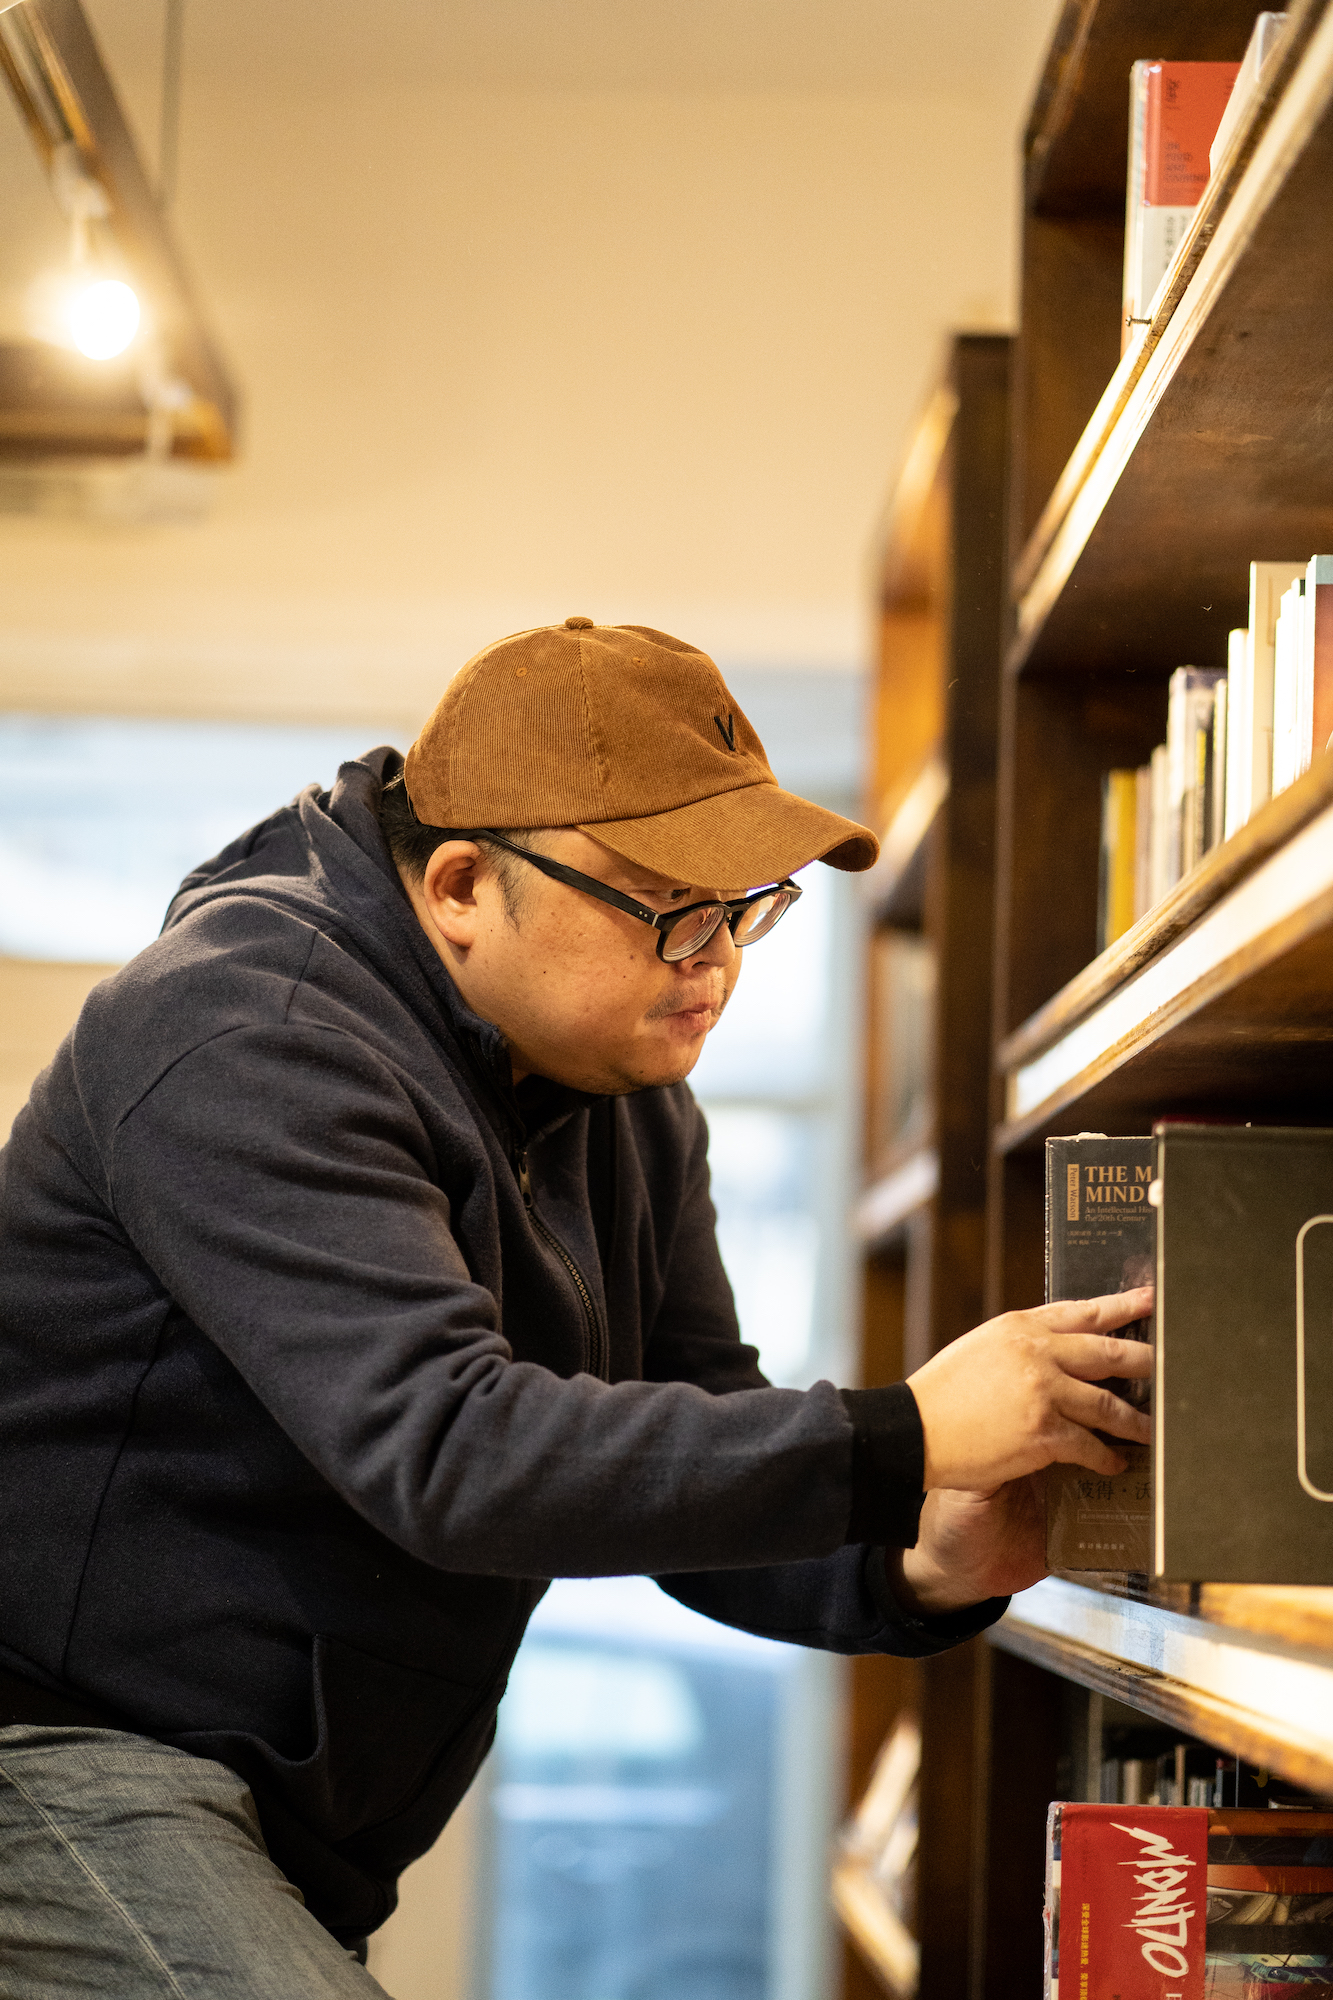 Anson Ng, owner of Pin-to Livros & Musica, shelving books